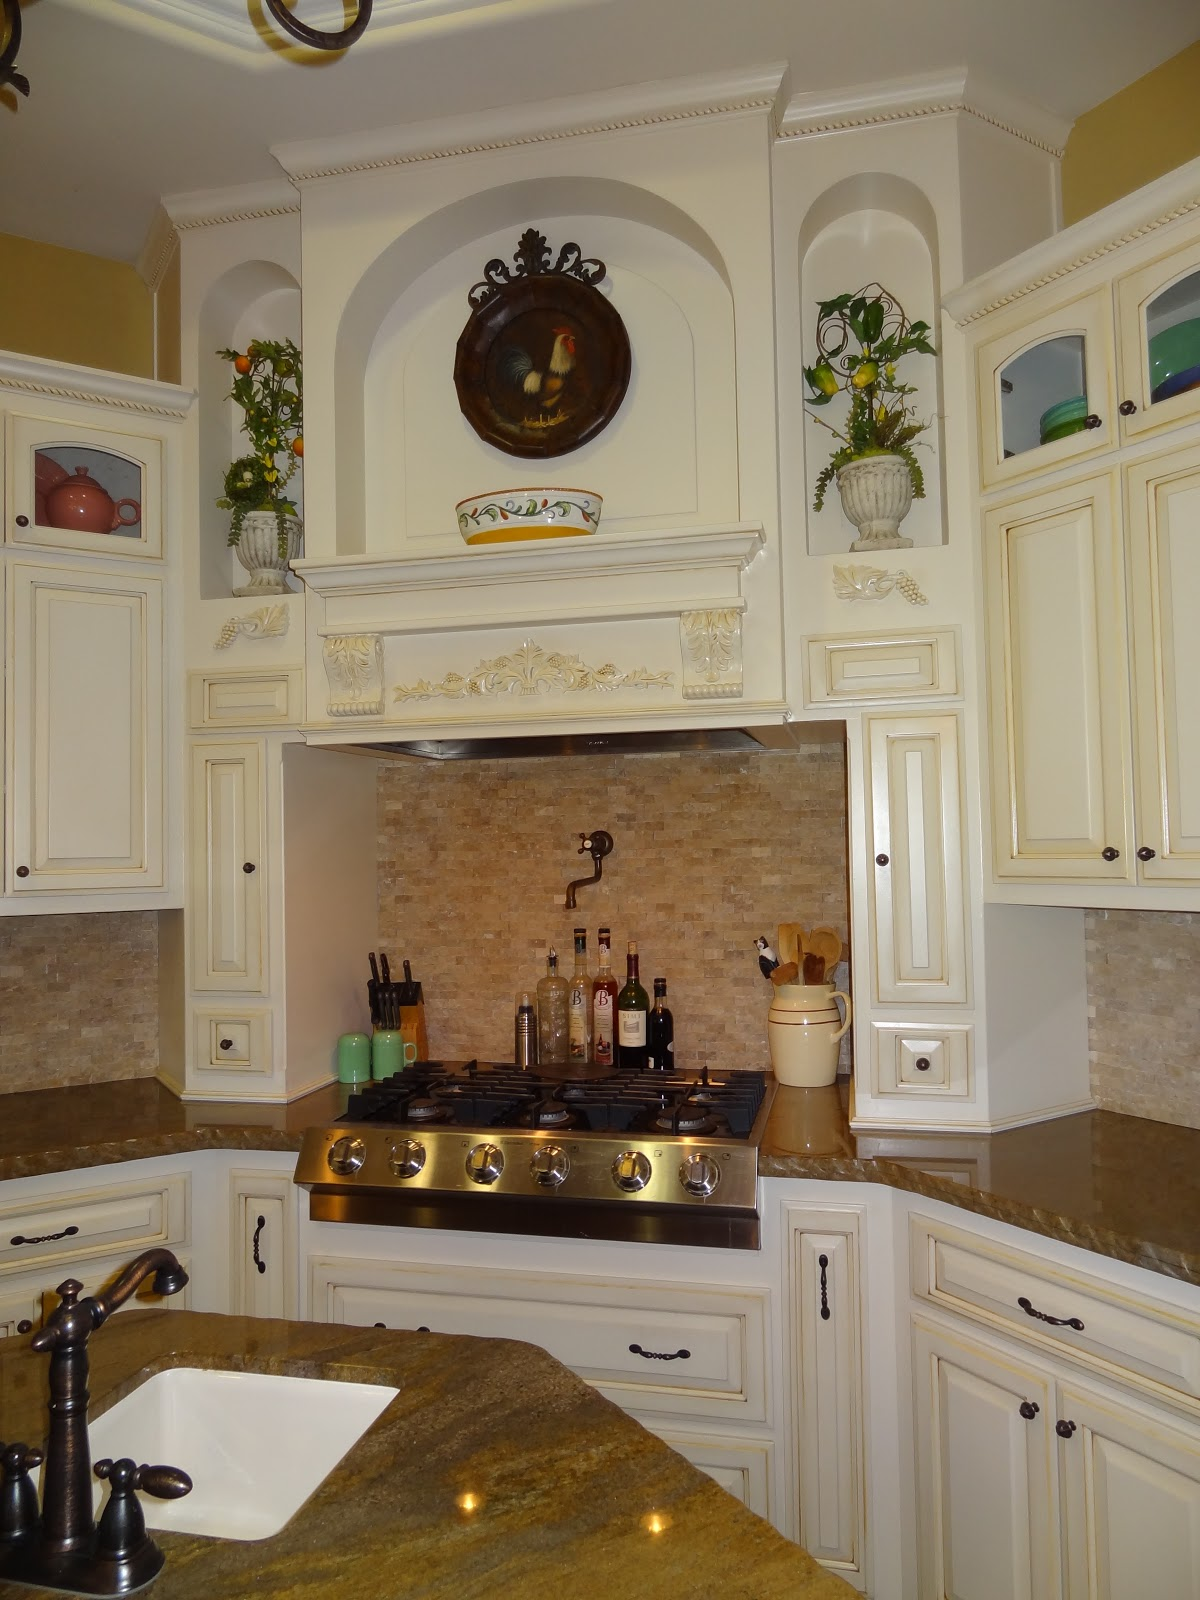 Kitchen Accents Jo Traveler Kitchen Accents Need To Be Simple And Few